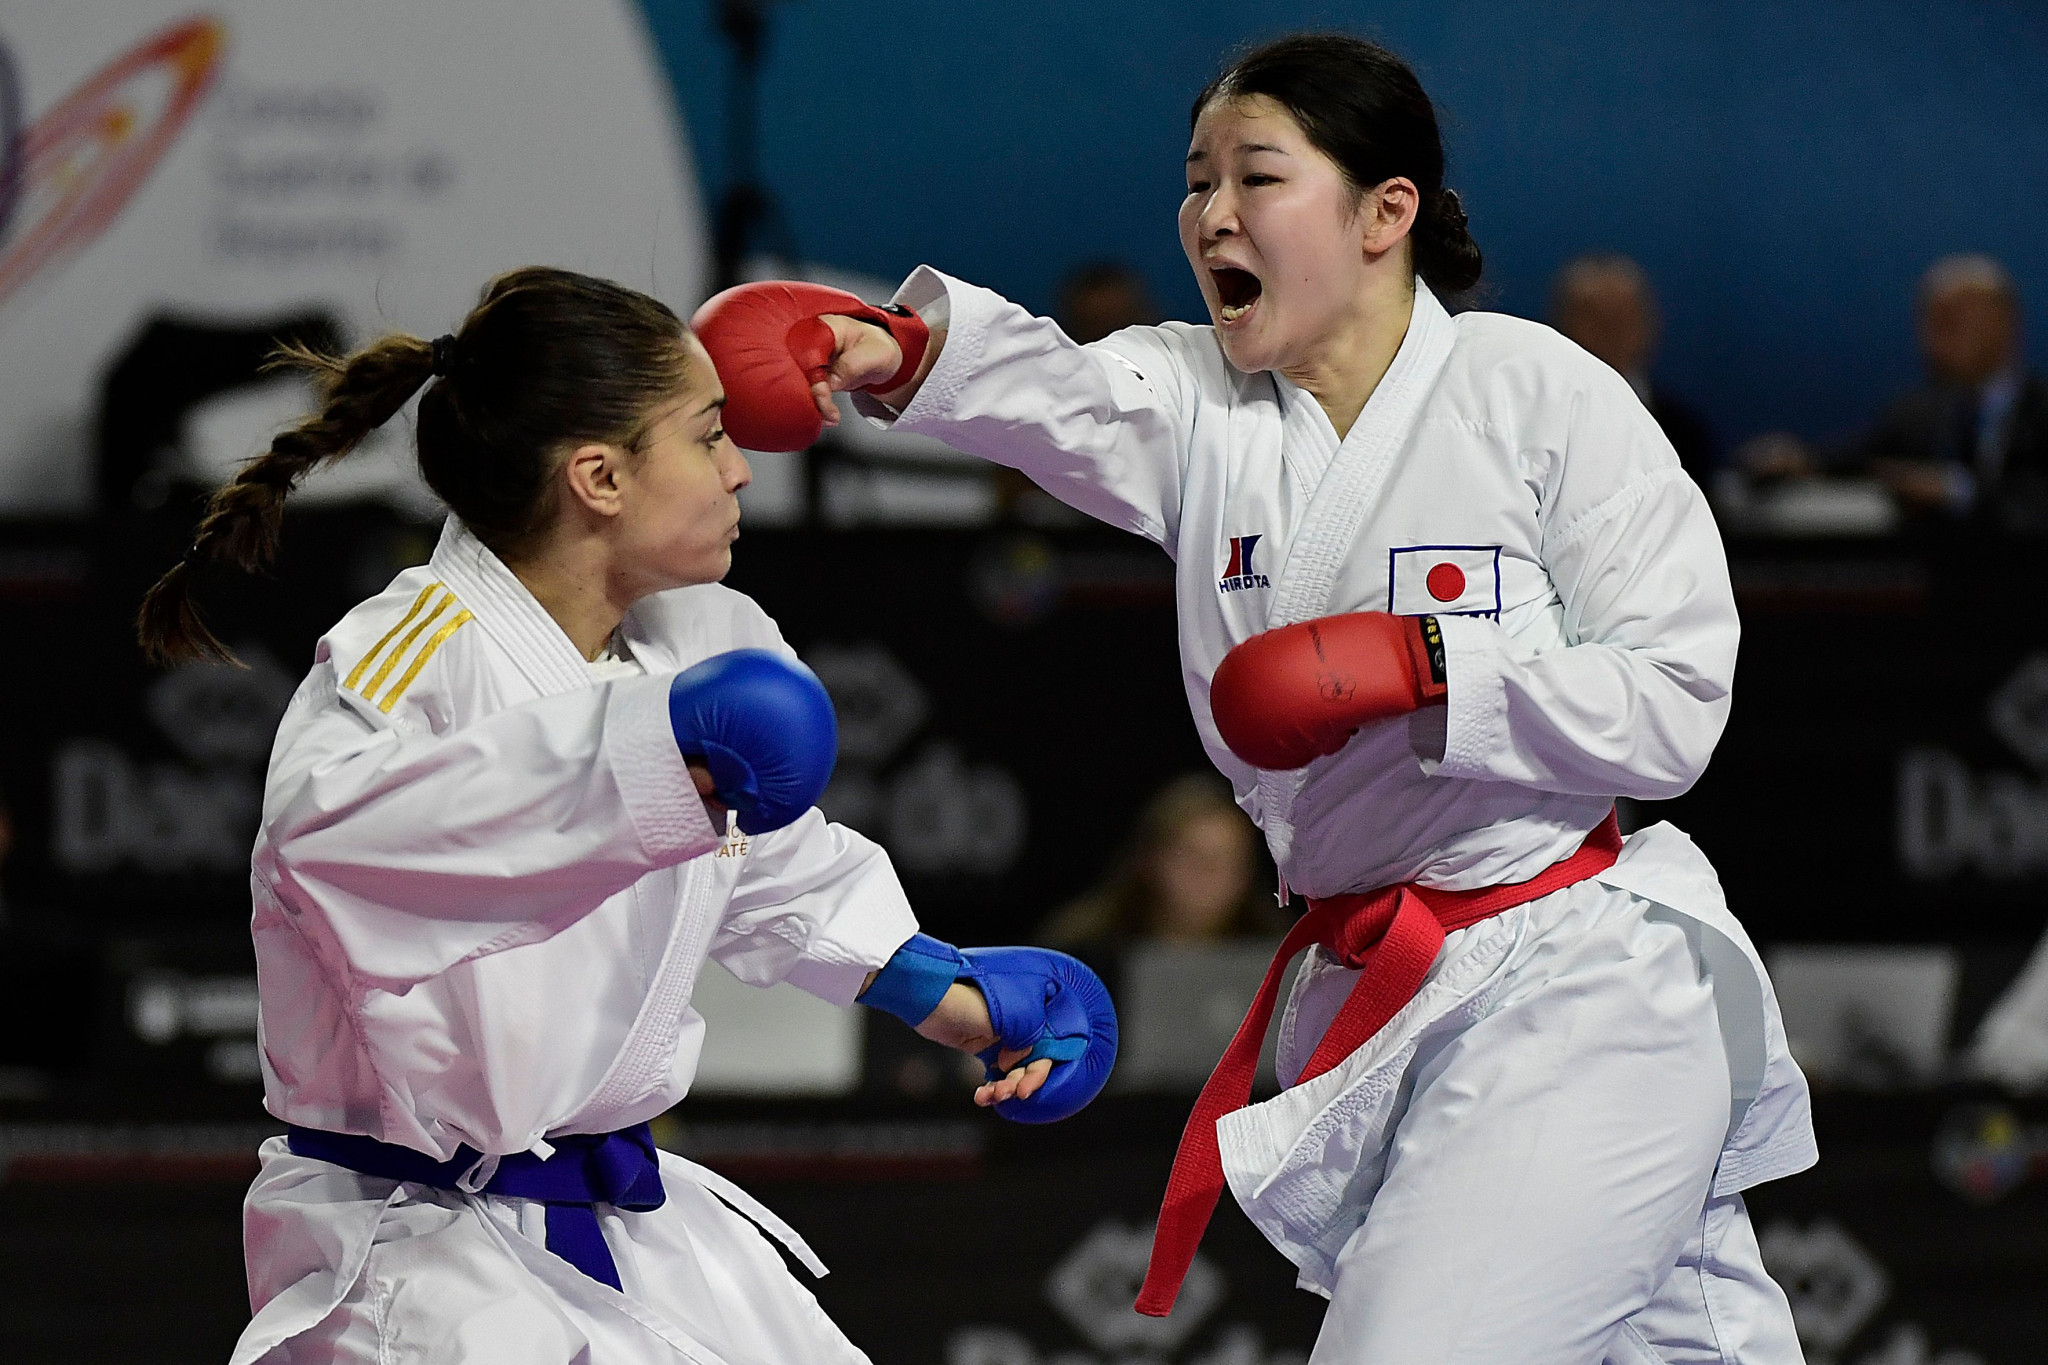 Karate is set to make its Olympic debut at Tokyo 2020 ©Getty Images